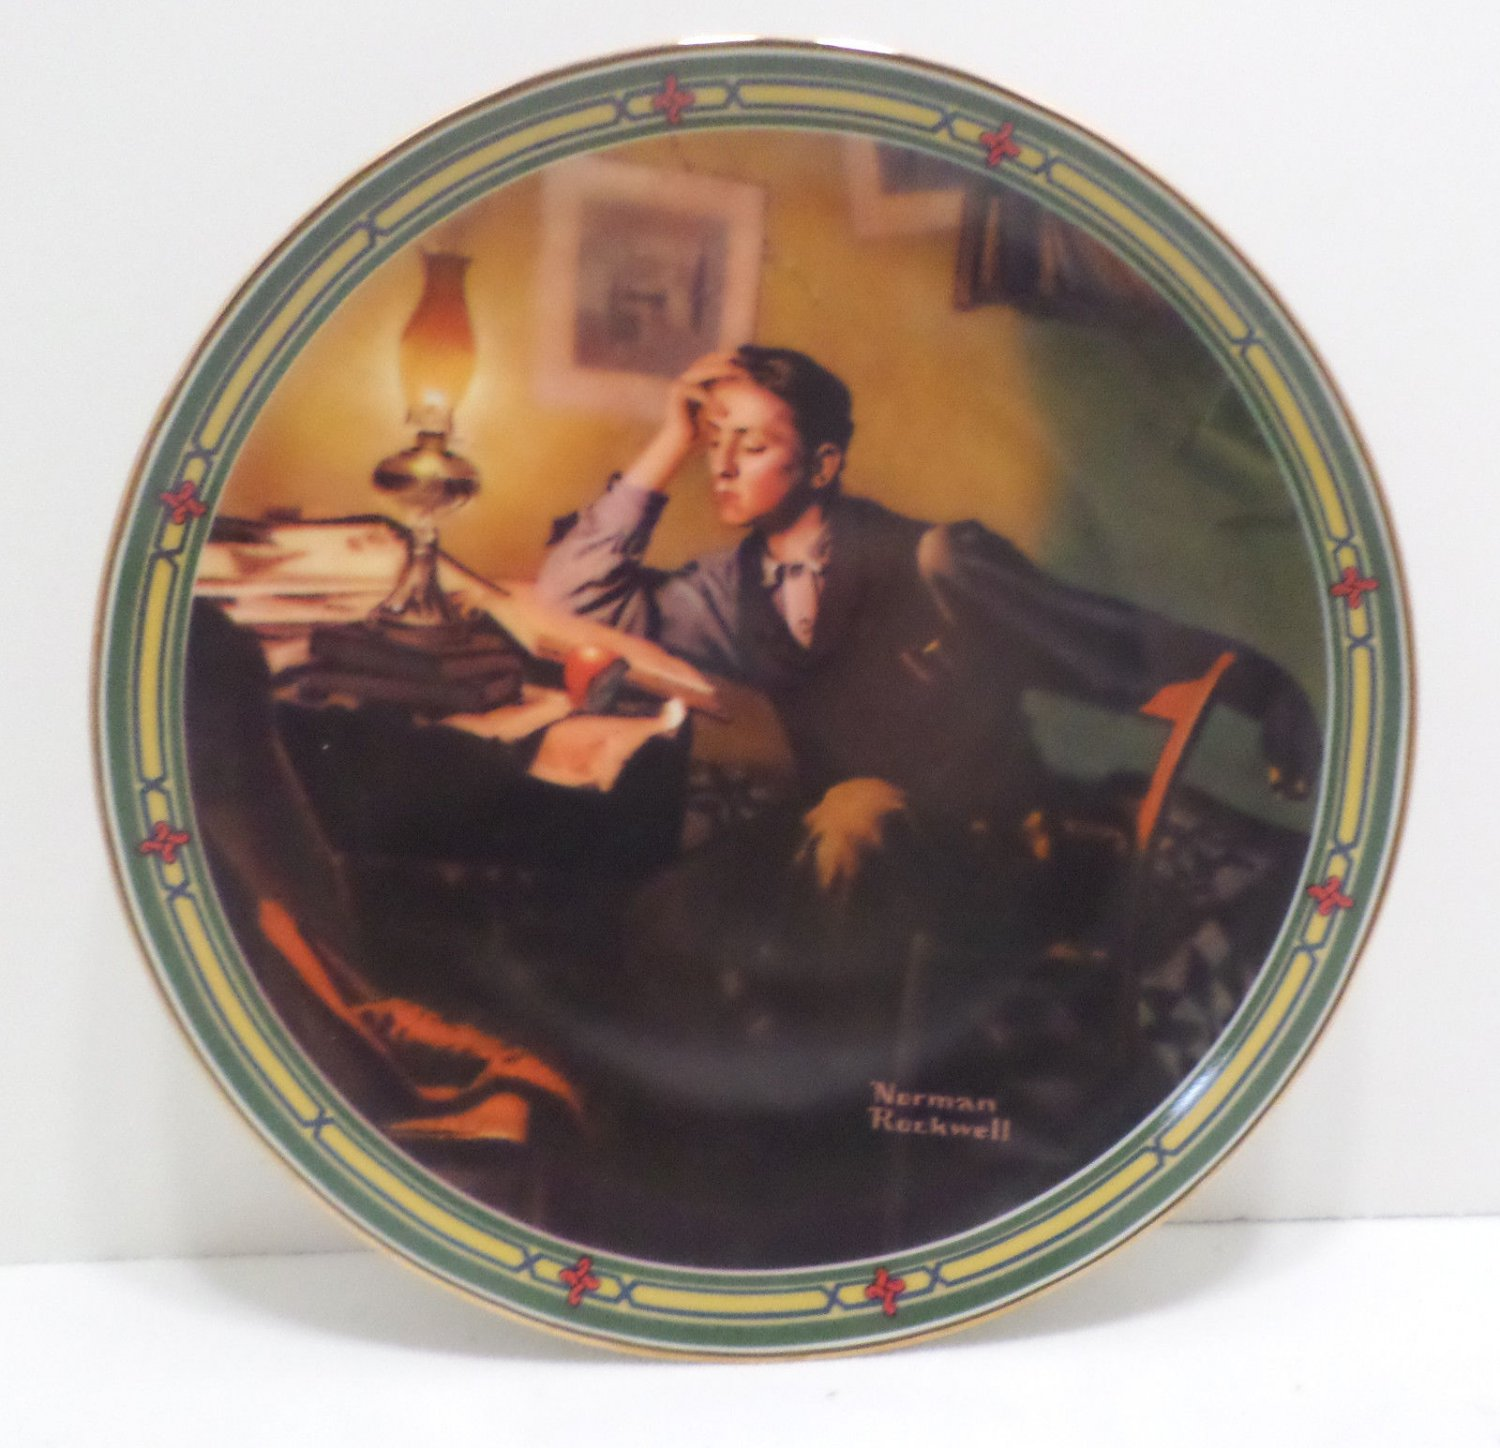 1986 Collector Plate A Young Man's Dream by Norman Rockwell #199J